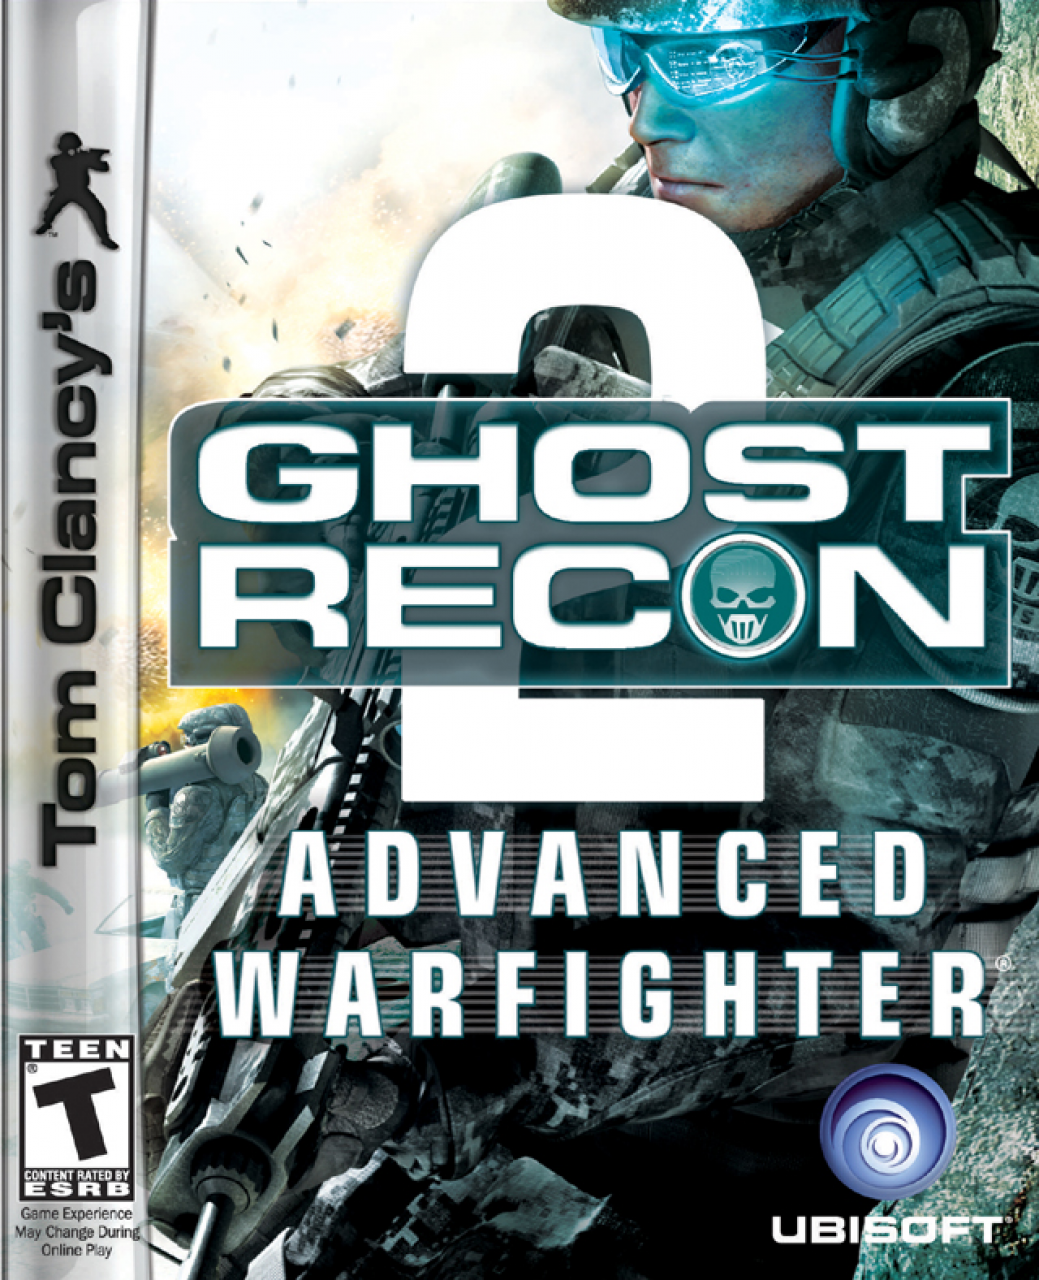 Tom clancy's ghost recon advanced warfighter 2 for pc | gamestop.